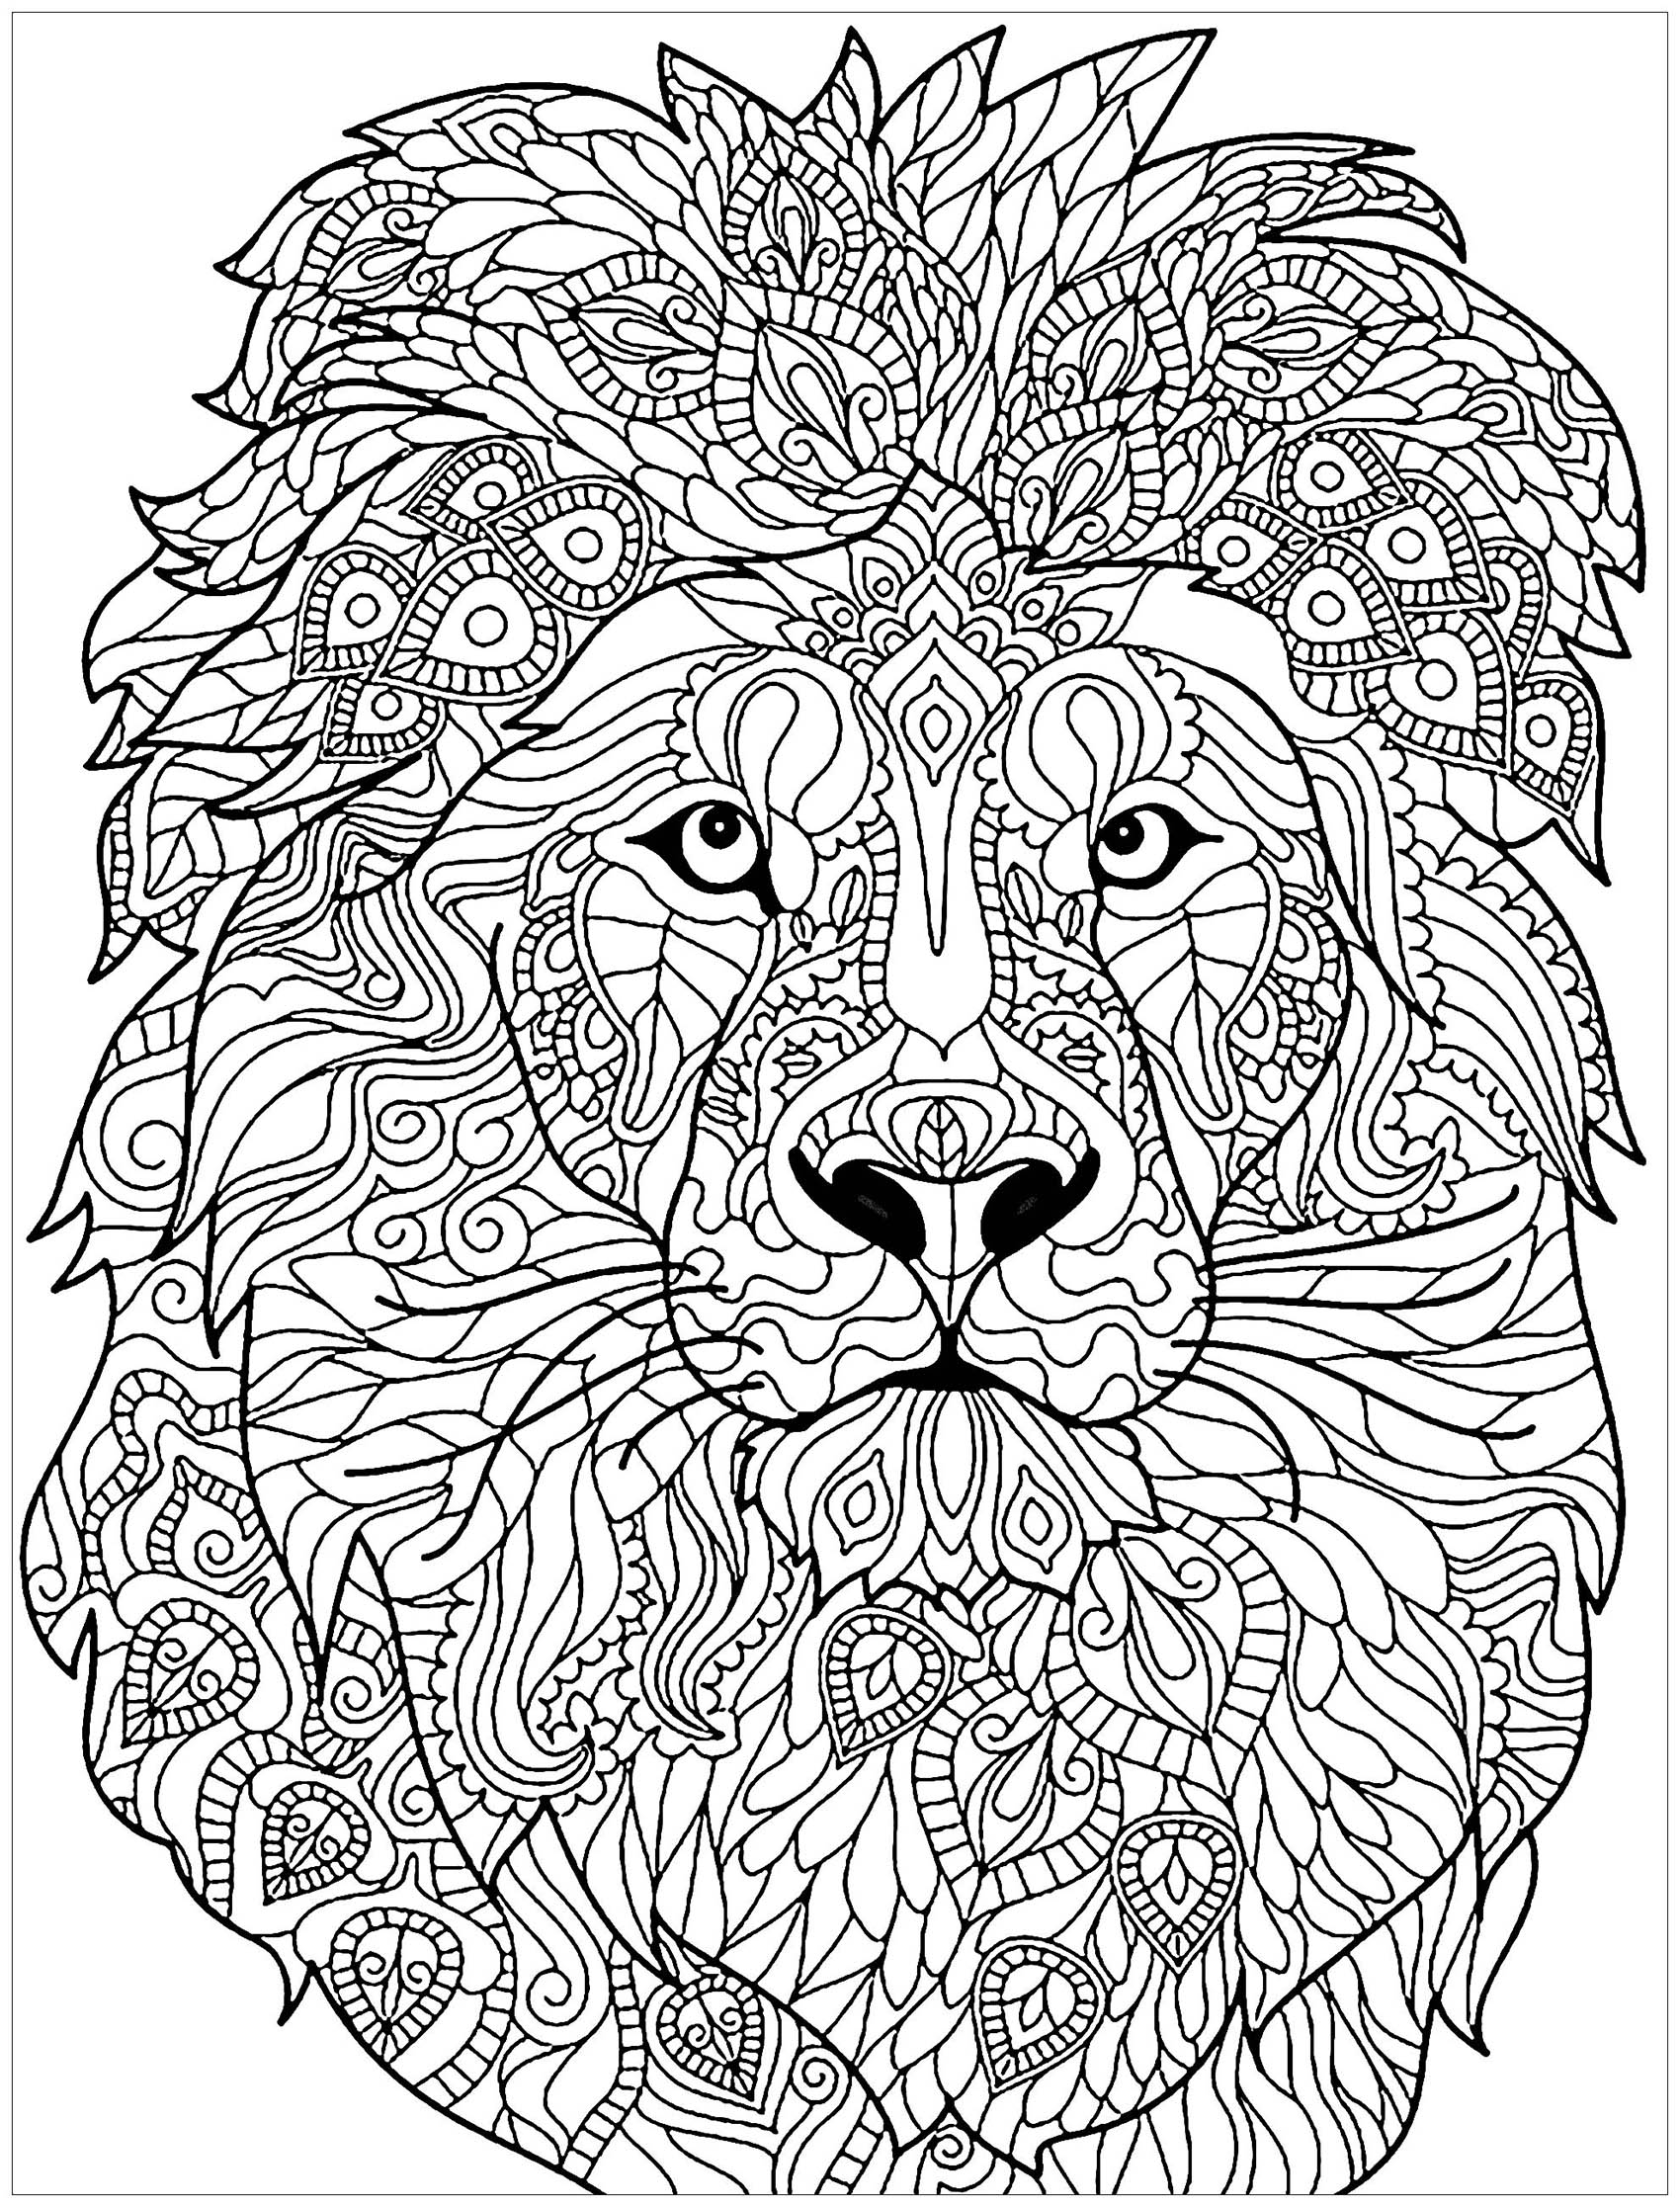 colour in lion hard lion coloring pages free transparent clipart colour lion in